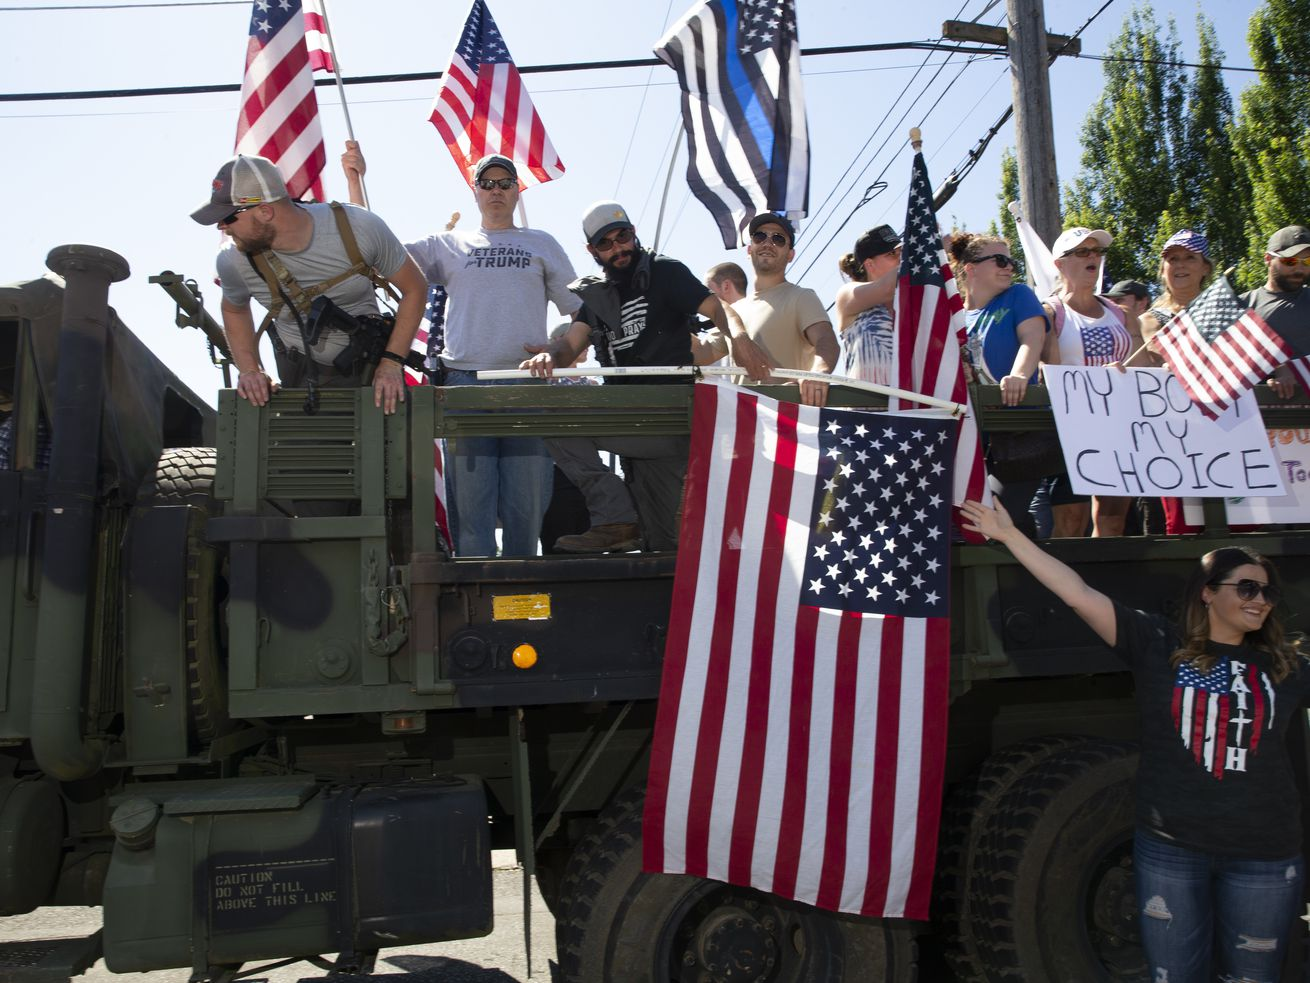 People in the back of a truck waving a flag and yelling in a protest.